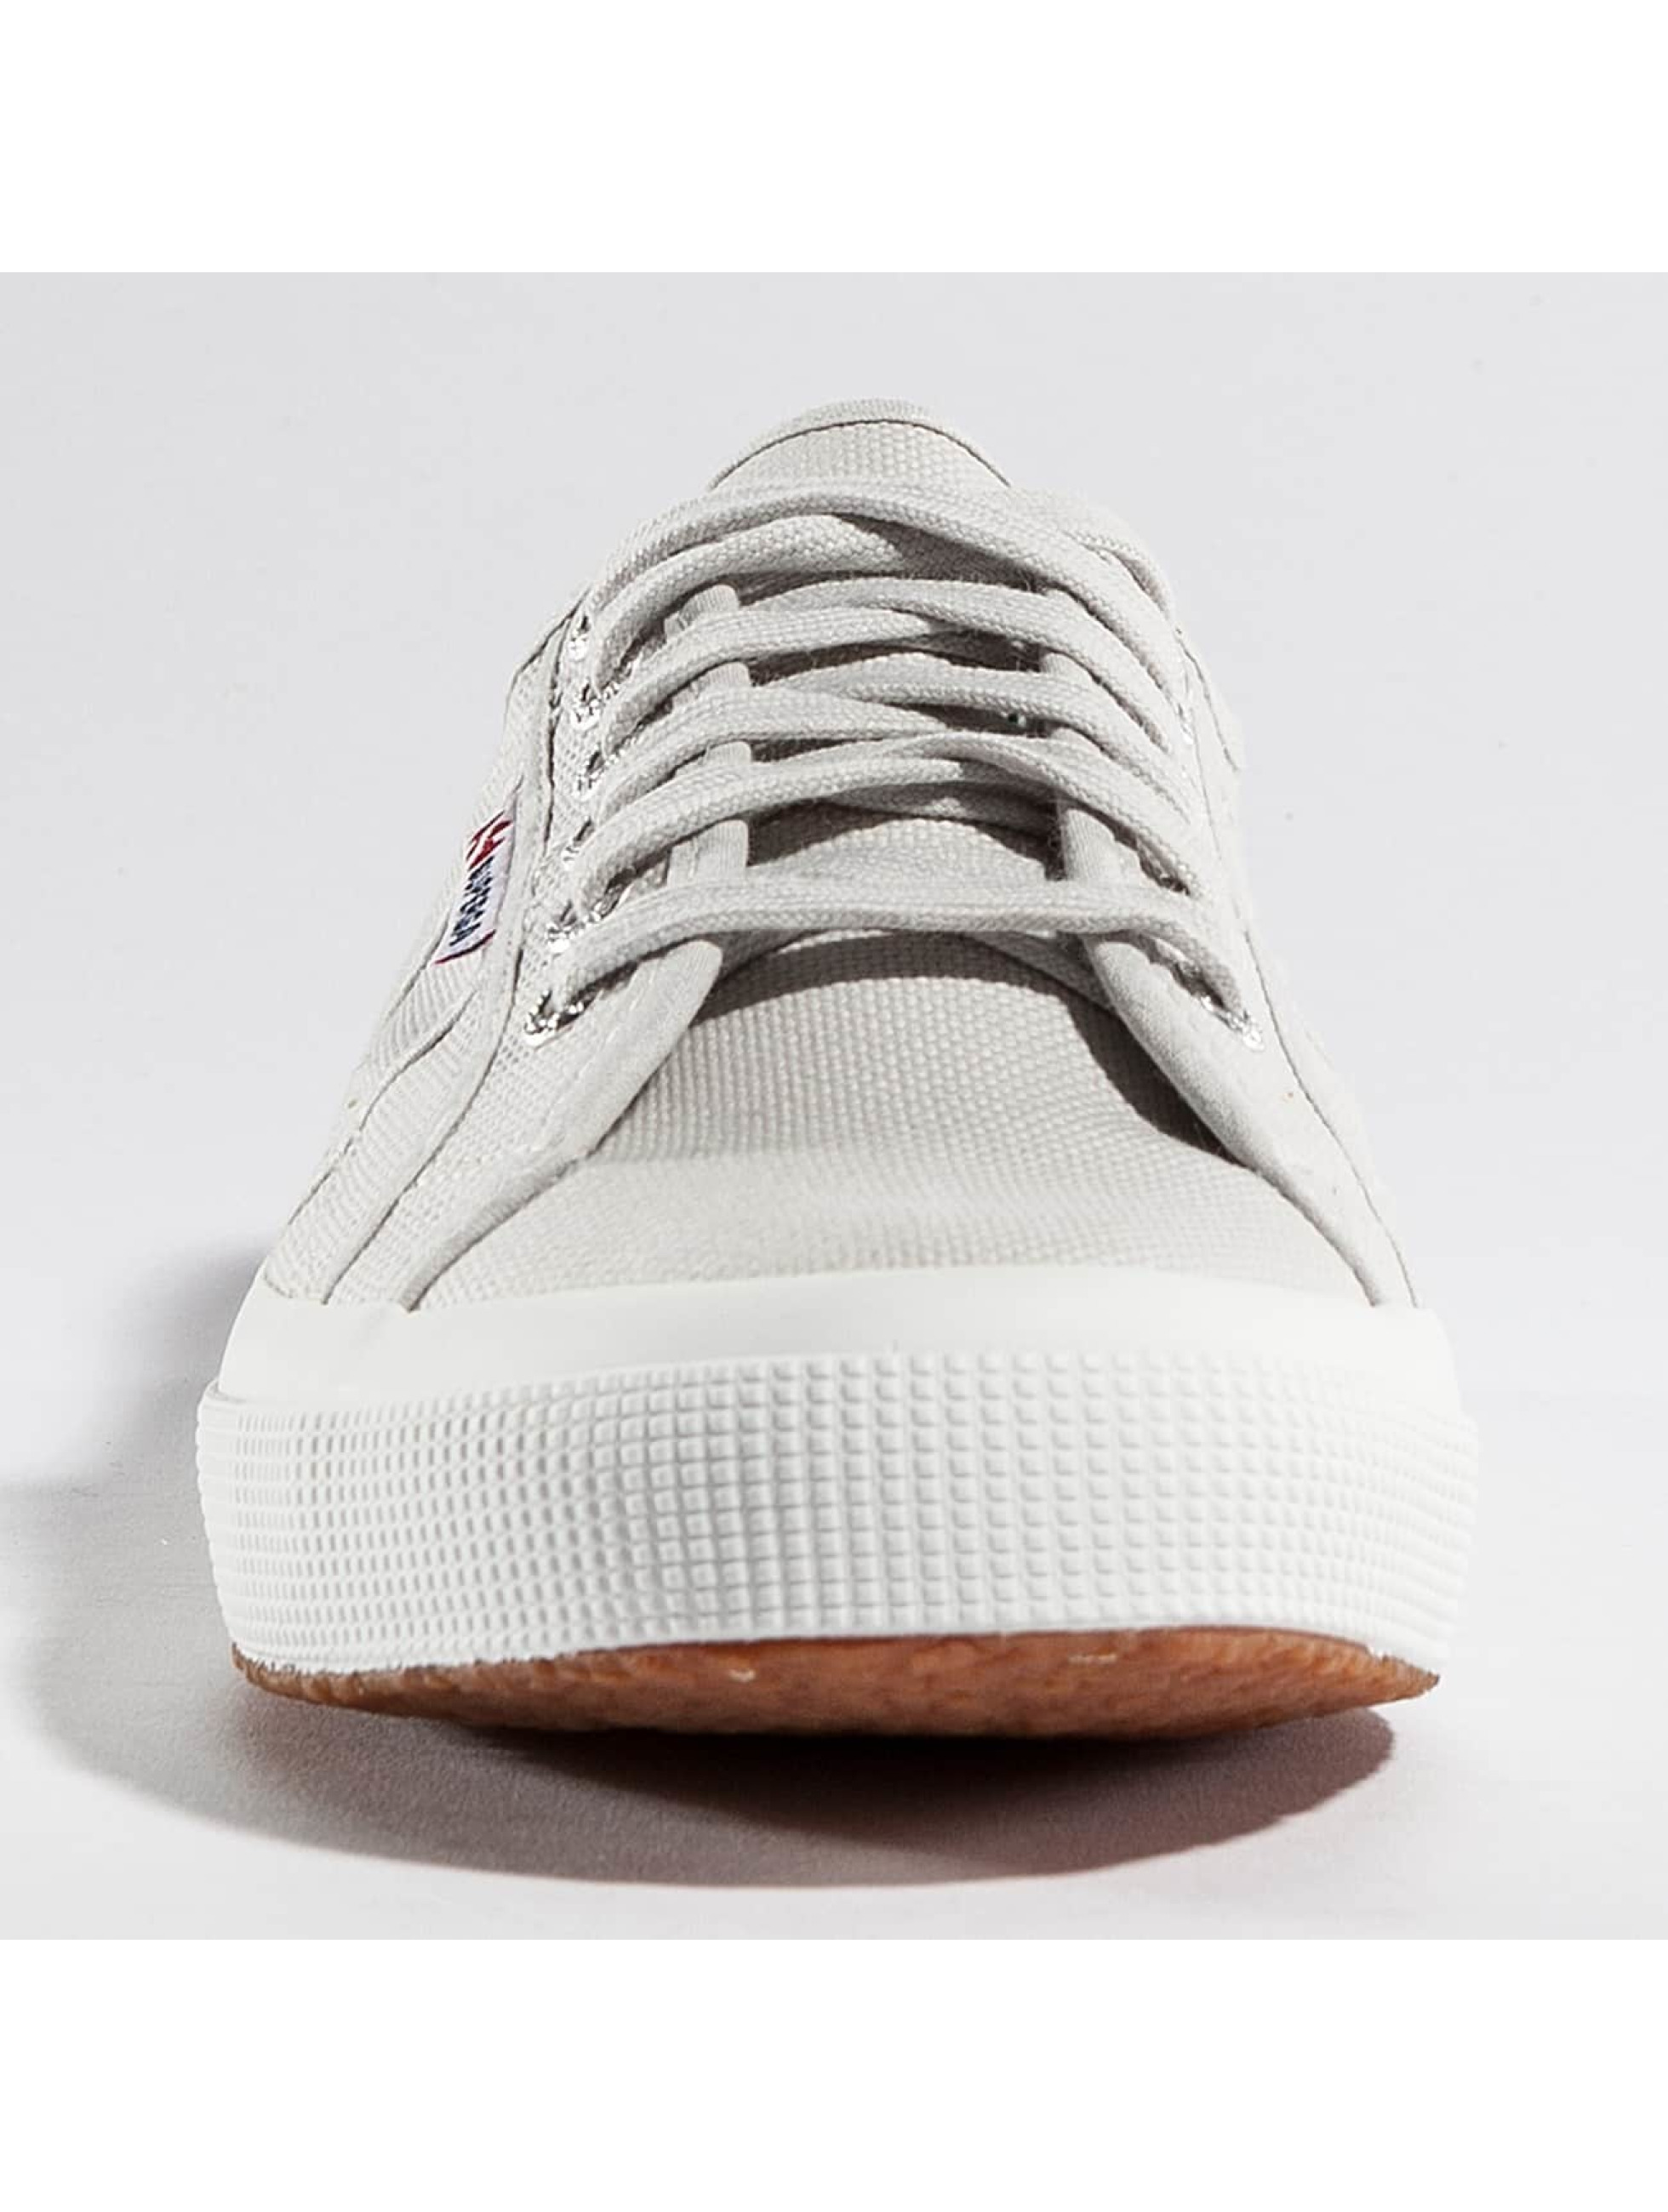 Superga Sneakers 2750 Cotu gray